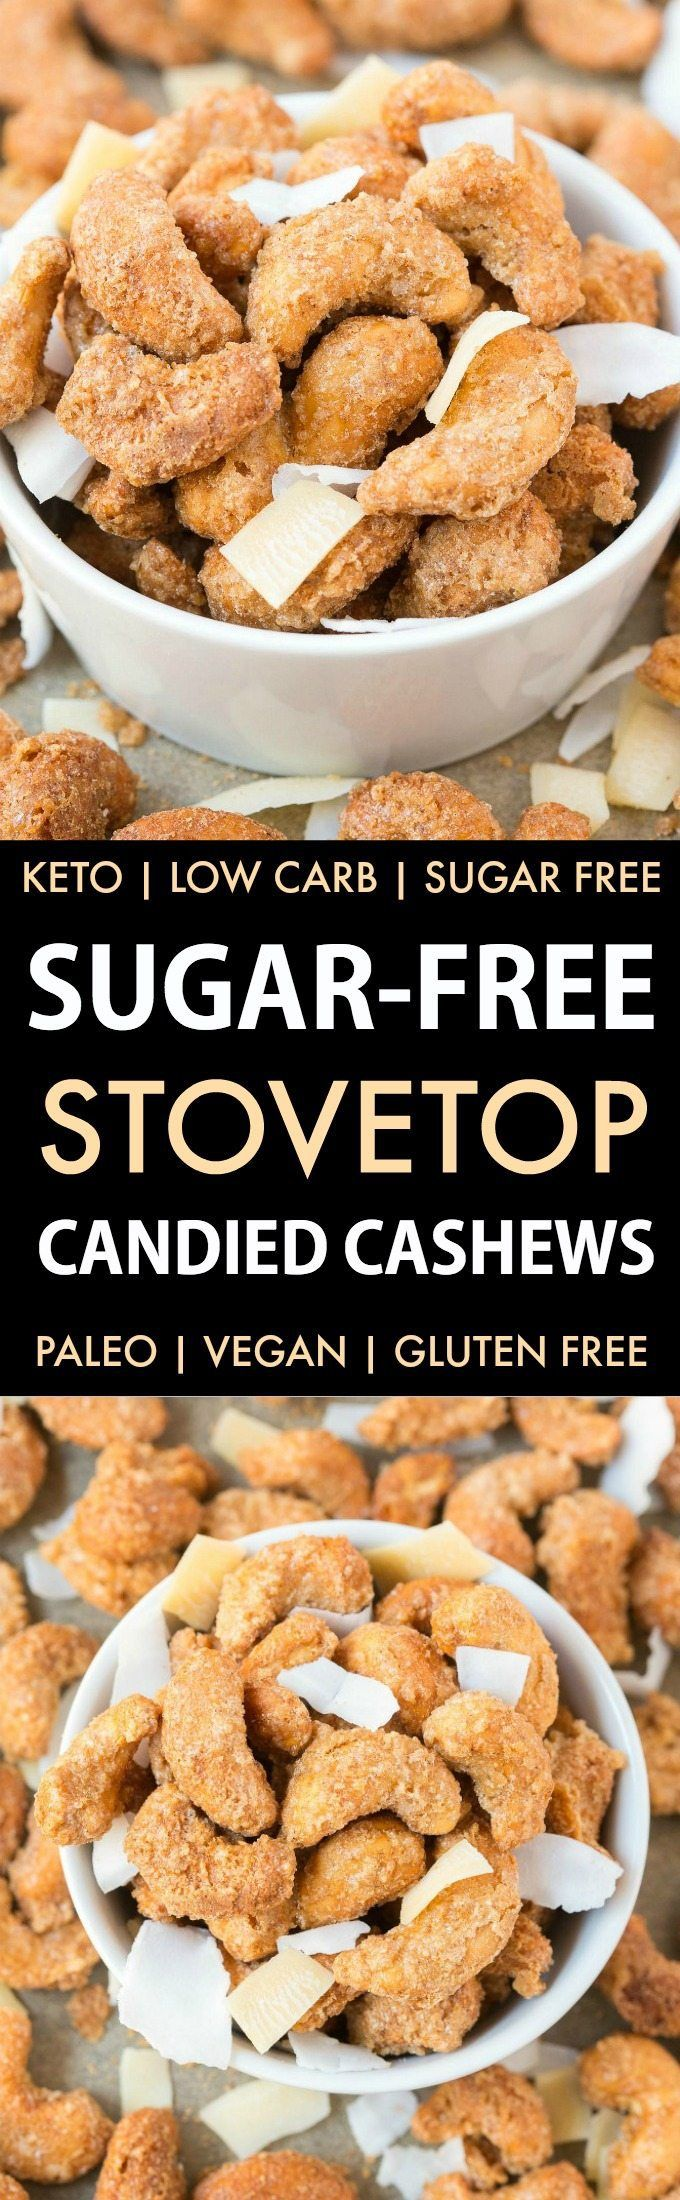 Best 25 sugar free candy ideas on pinterest low carb peanut easy sugar free candied cashews keto low carb paleo stovetop made candied cashews made with zero sugar or oil perfect for holidays gifts and every negle Choice Image